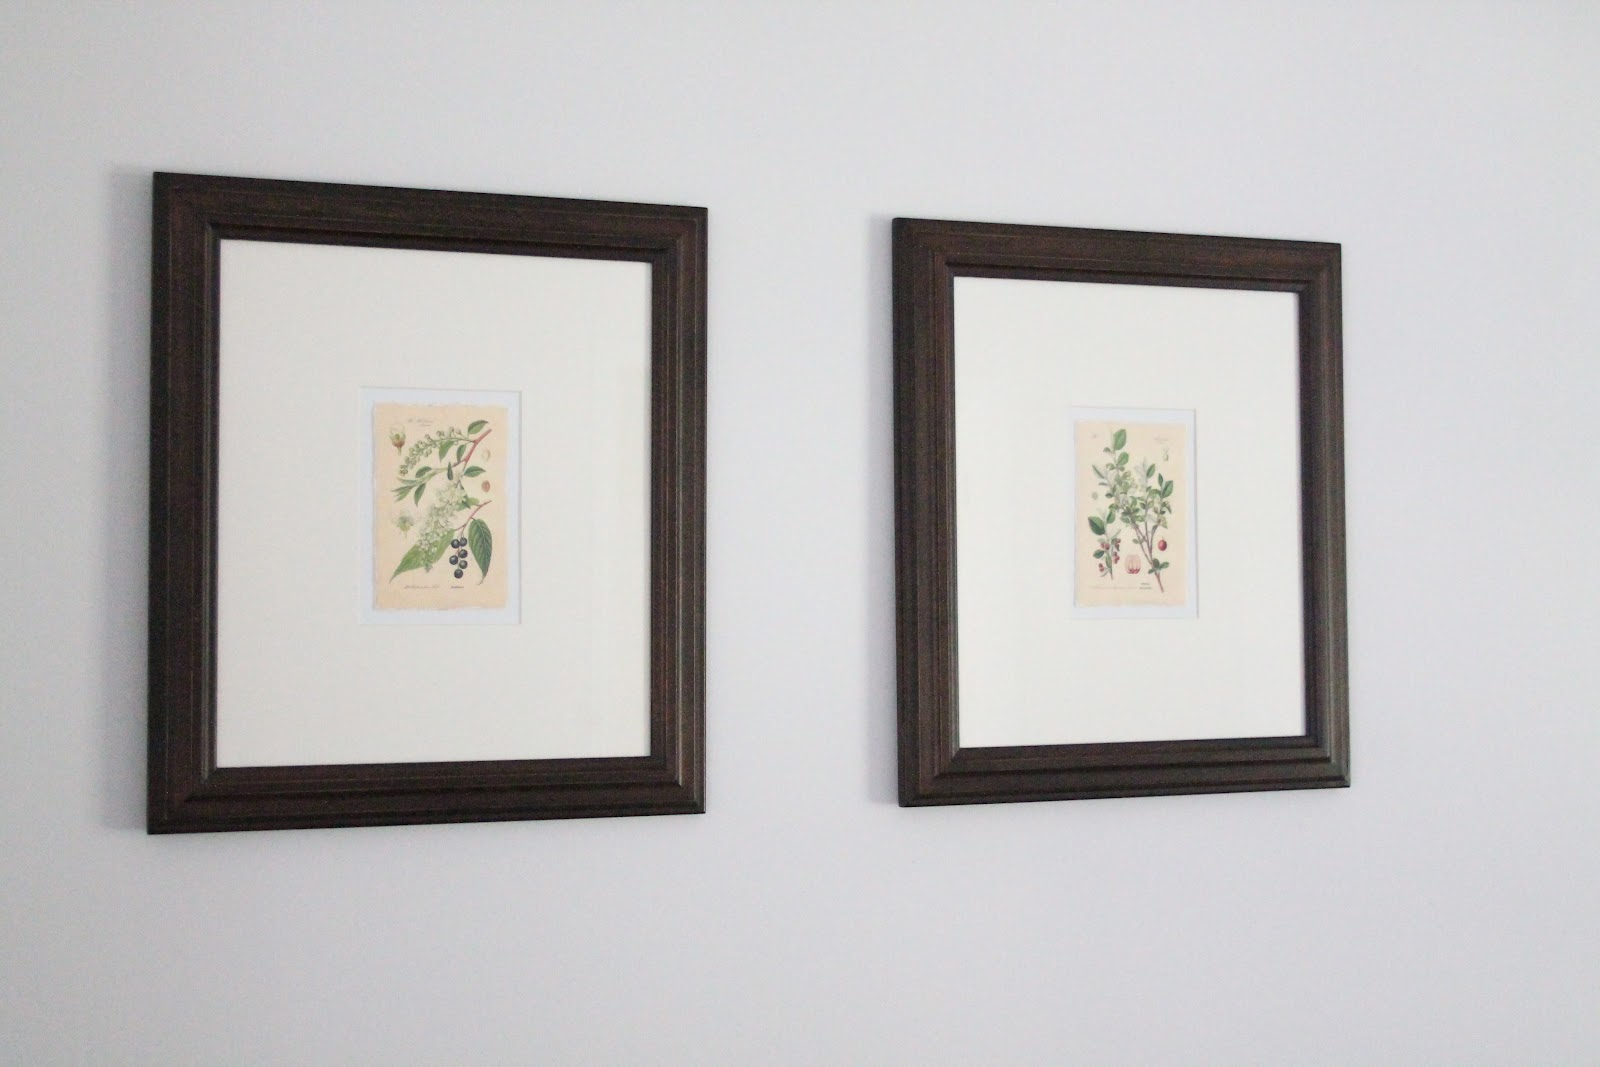 Wall Decor - Coordinately Yours by Julie Blanner entertaining